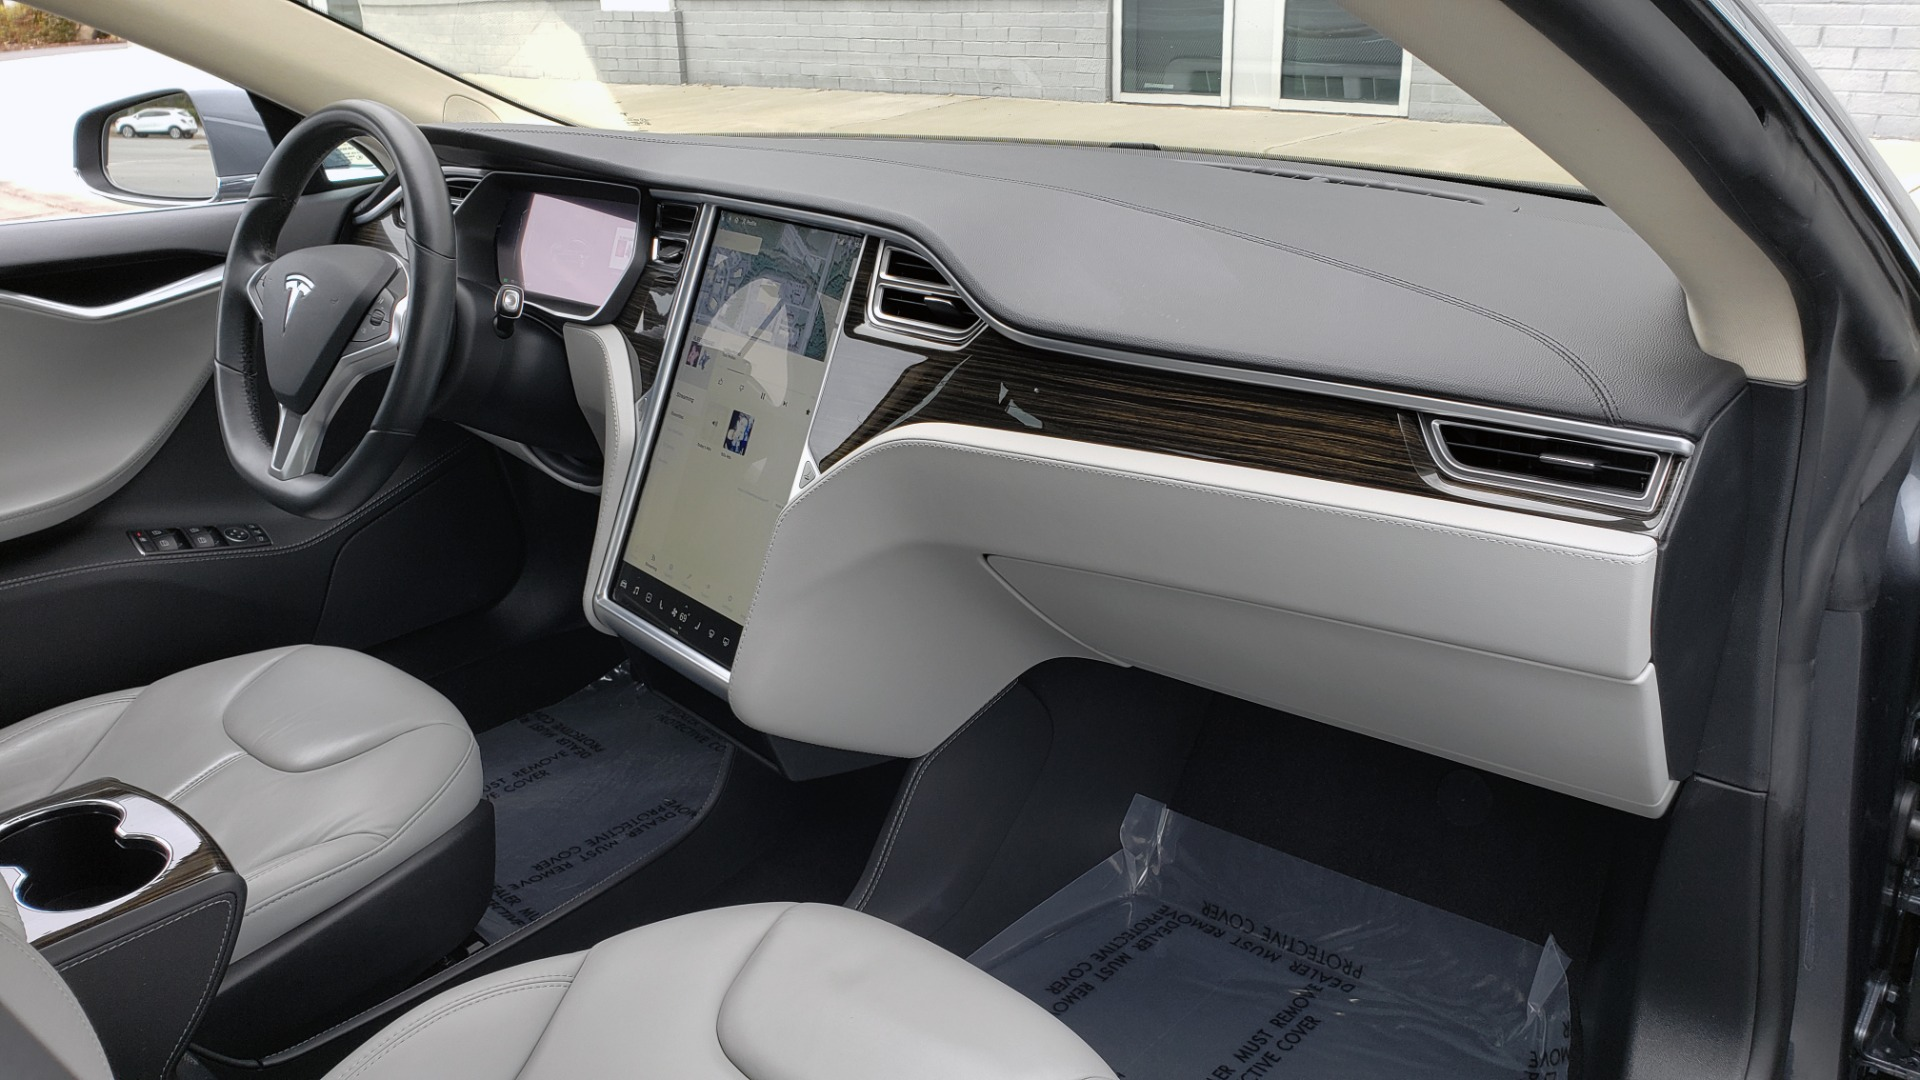 Used 2014 Tesla MODEL S 60 kWh BATTERY / TECH / NAV / SUBZERO / SUNROOF / REARVIEW for sale Sold at Formula Imports in Charlotte NC 28227 57